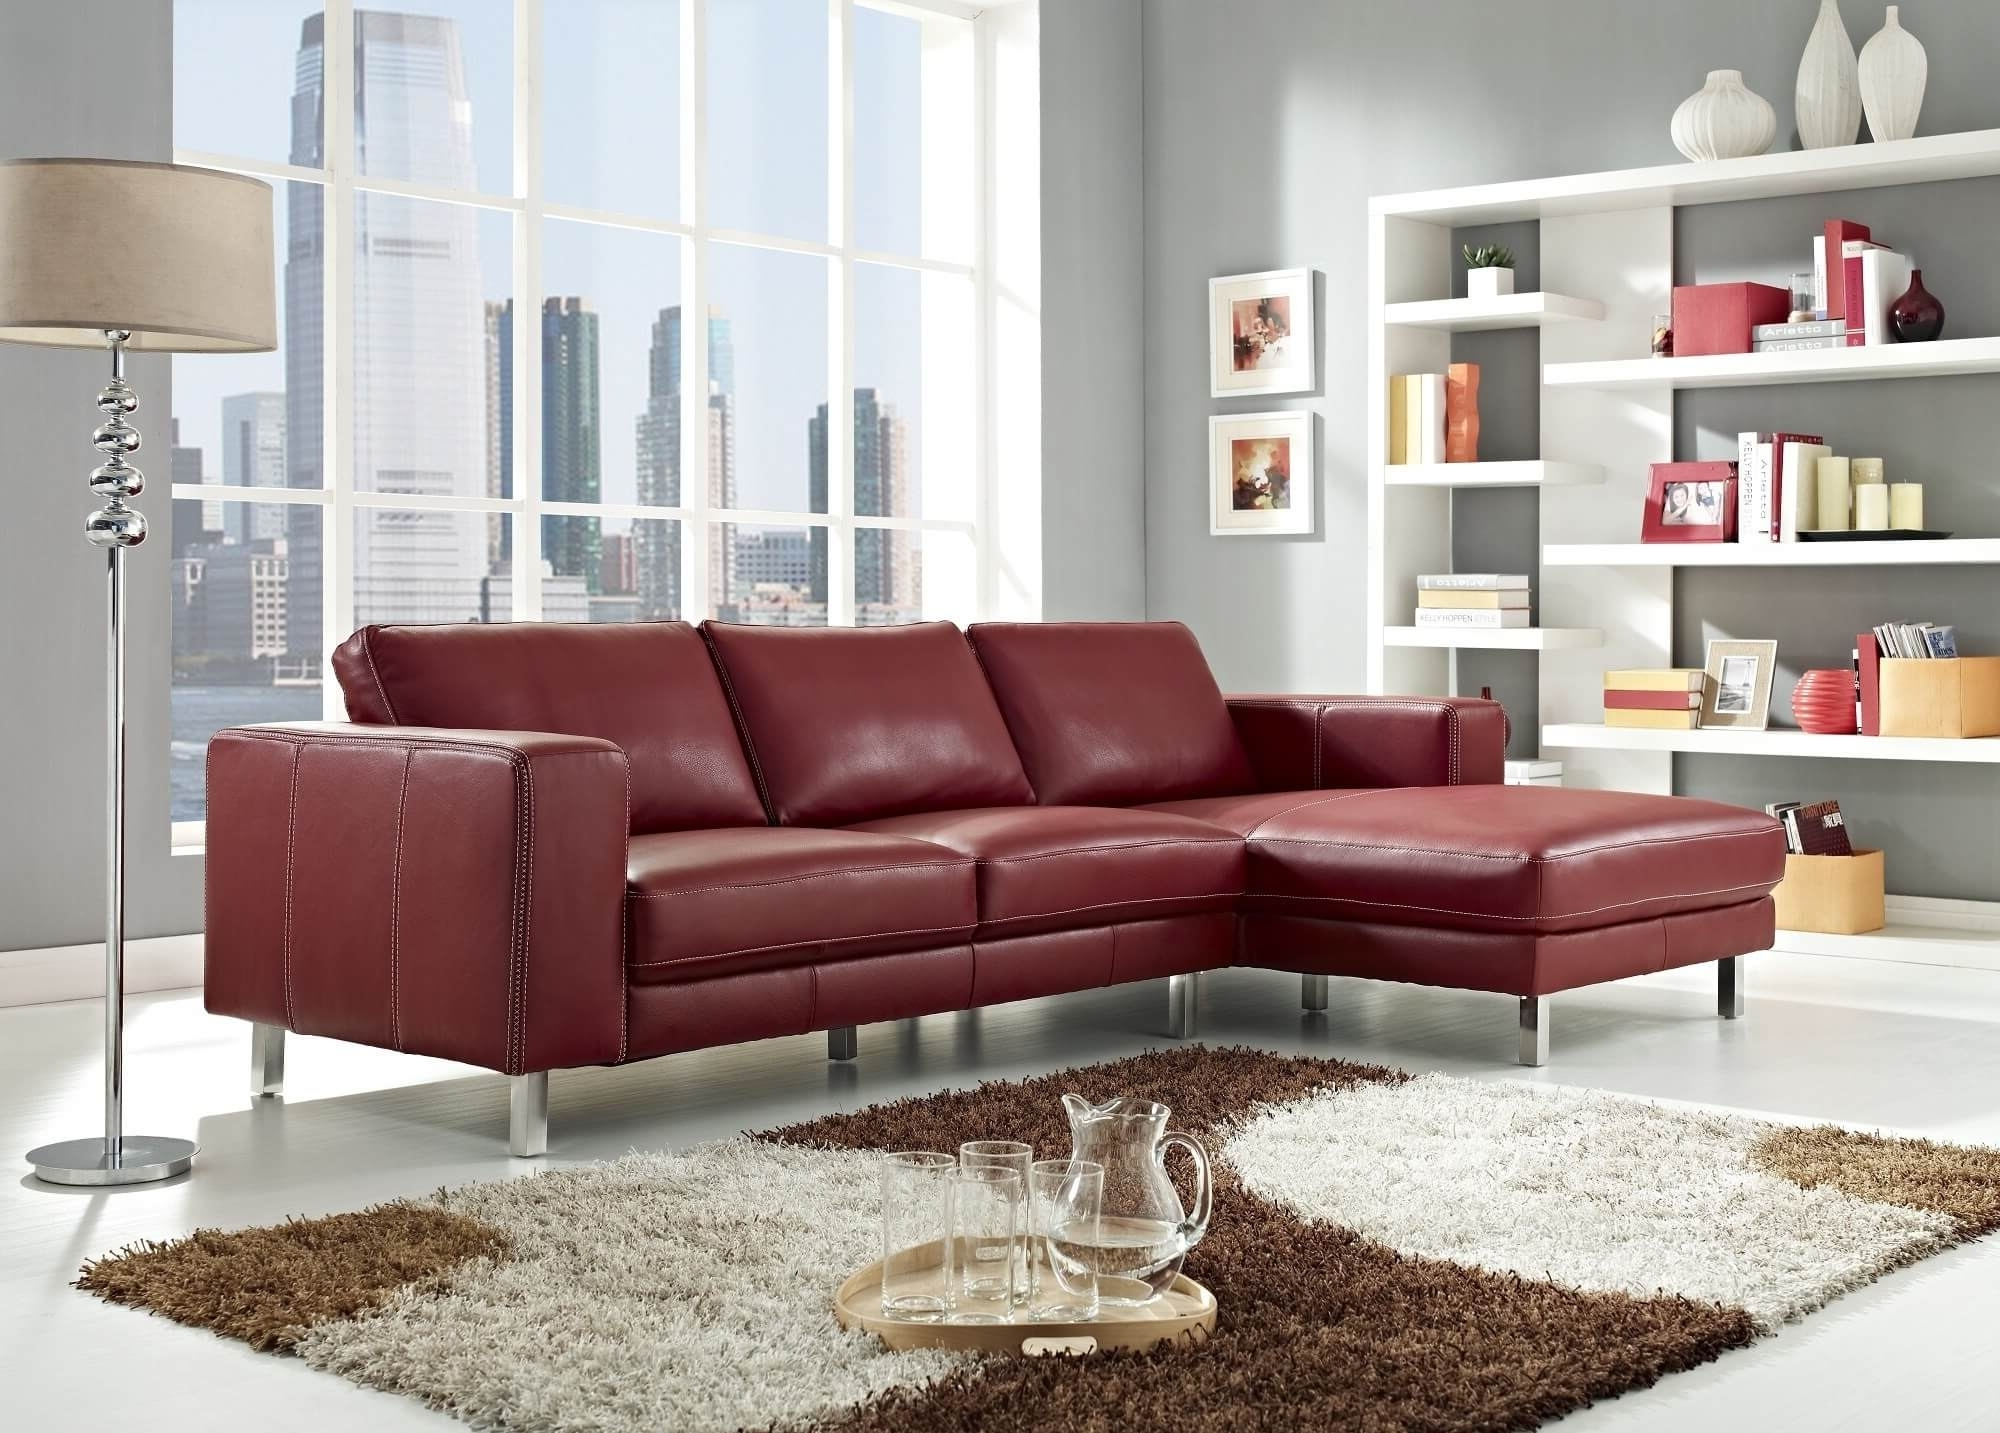 Newest Red Leather Sectionals With Chaise With Regard To Stylish Modern Red Sectional Sofas (View 9 of 20)